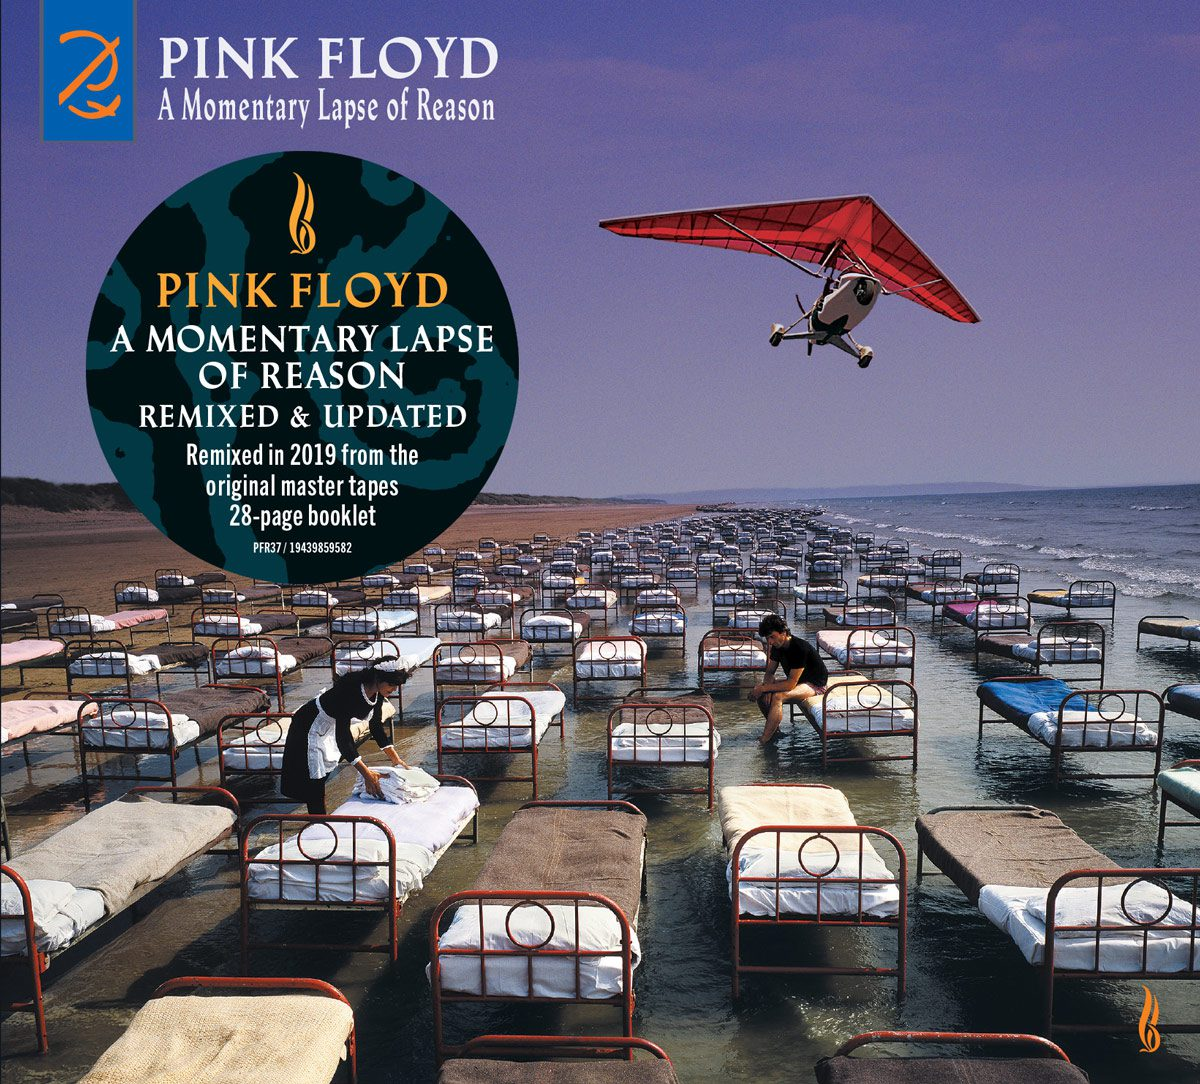 Pink Floyd Announces Remixed and Updated 'A Momentary Lapse of Reason' in 360 Reality Audio